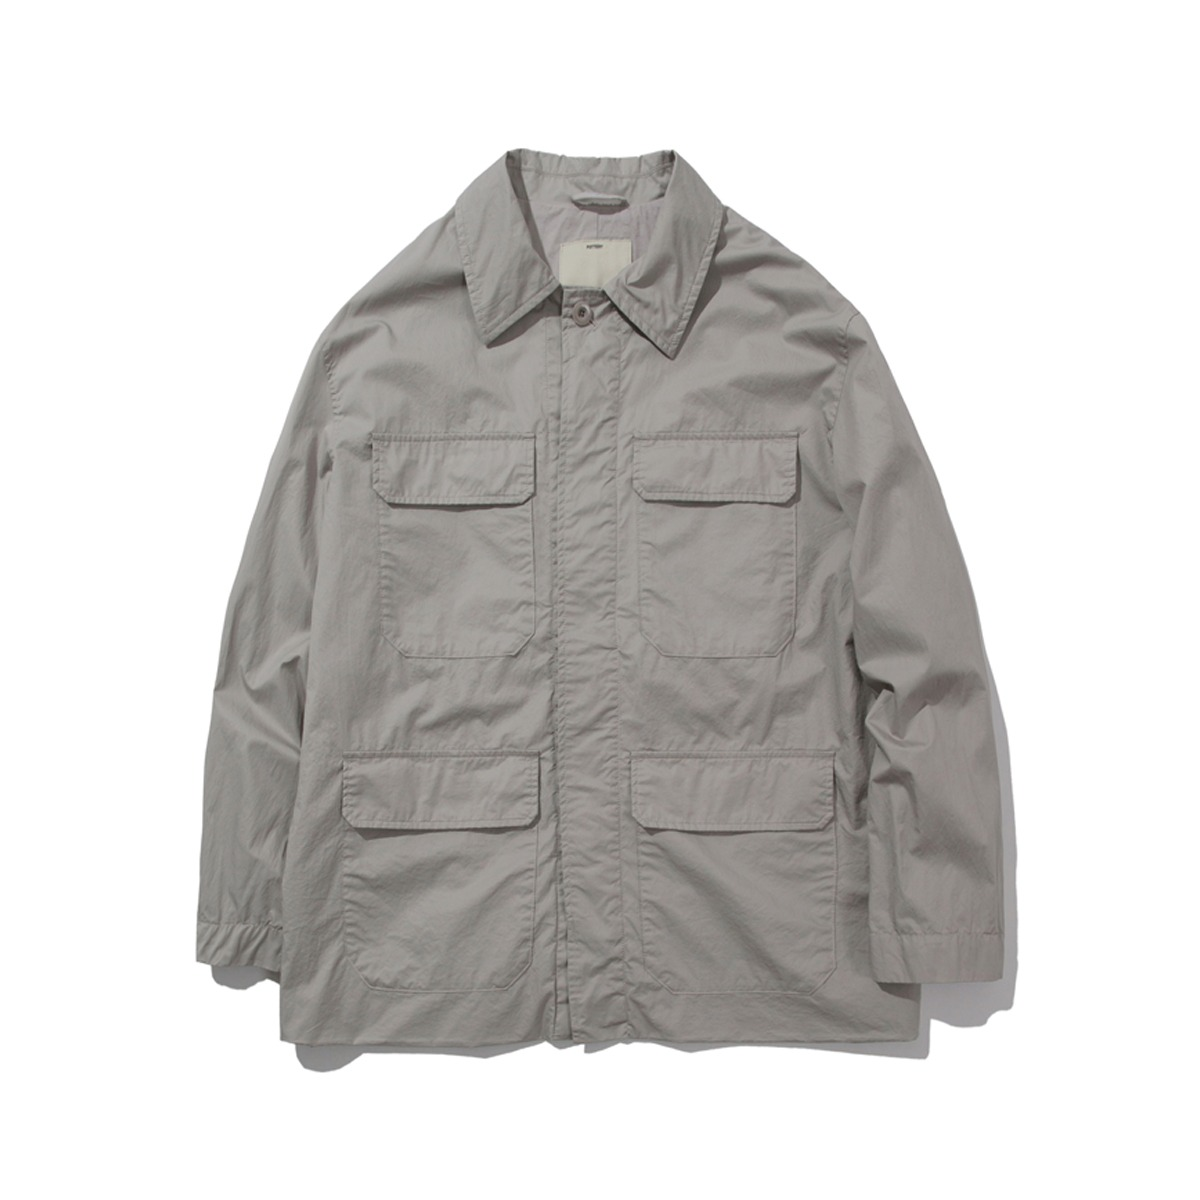 [POTTERY] COTTON FATIGUE JACKET 'SILVER BEIGE'